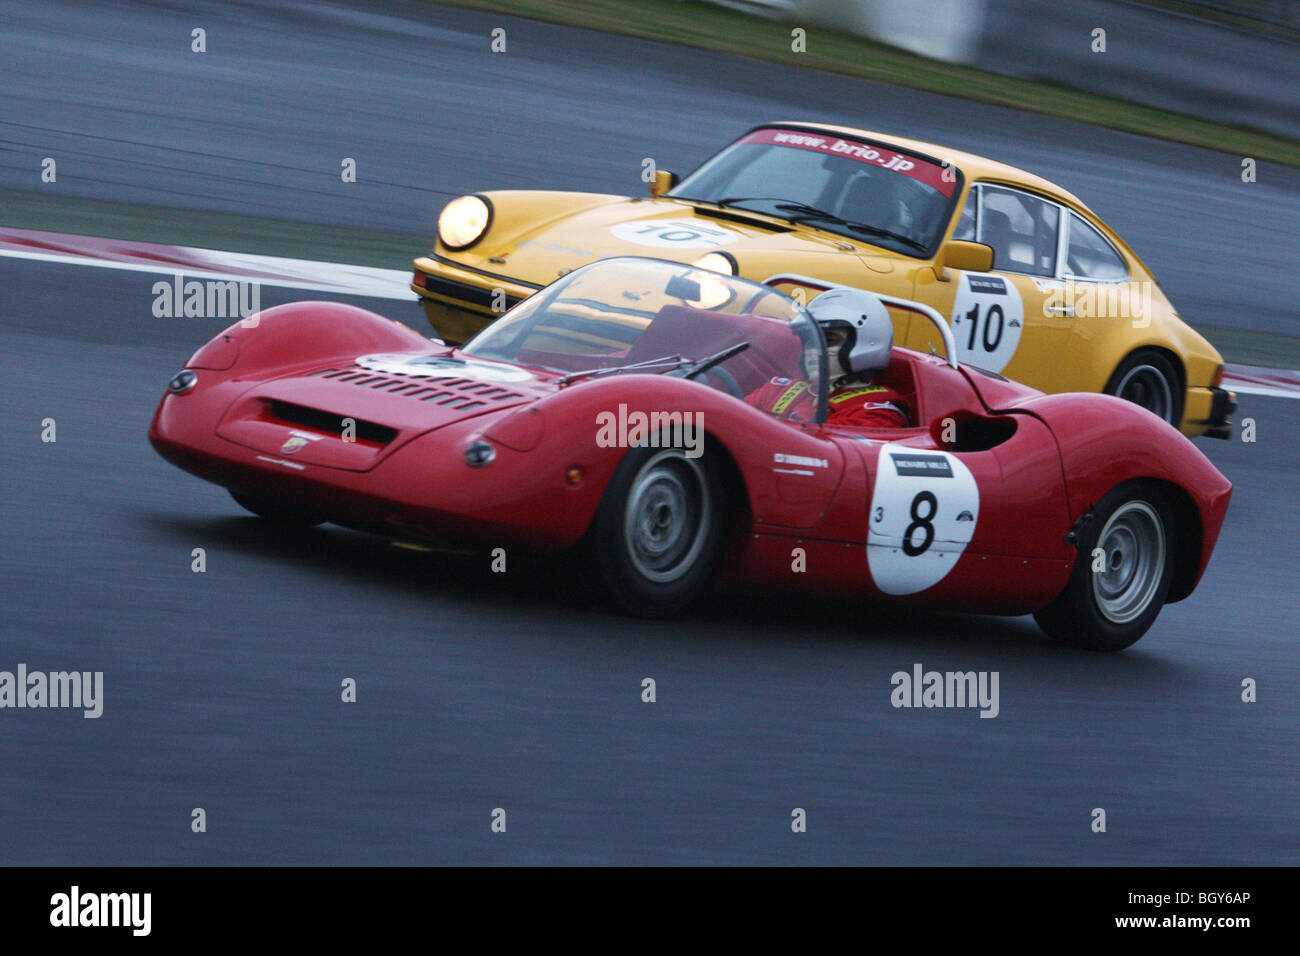 1974 Porsche 911 and a 1967 Abarth 1000SP. Le Mans Classic car race, Fuji Speedway, Japan, Saturday, November 10th, - Stock Image